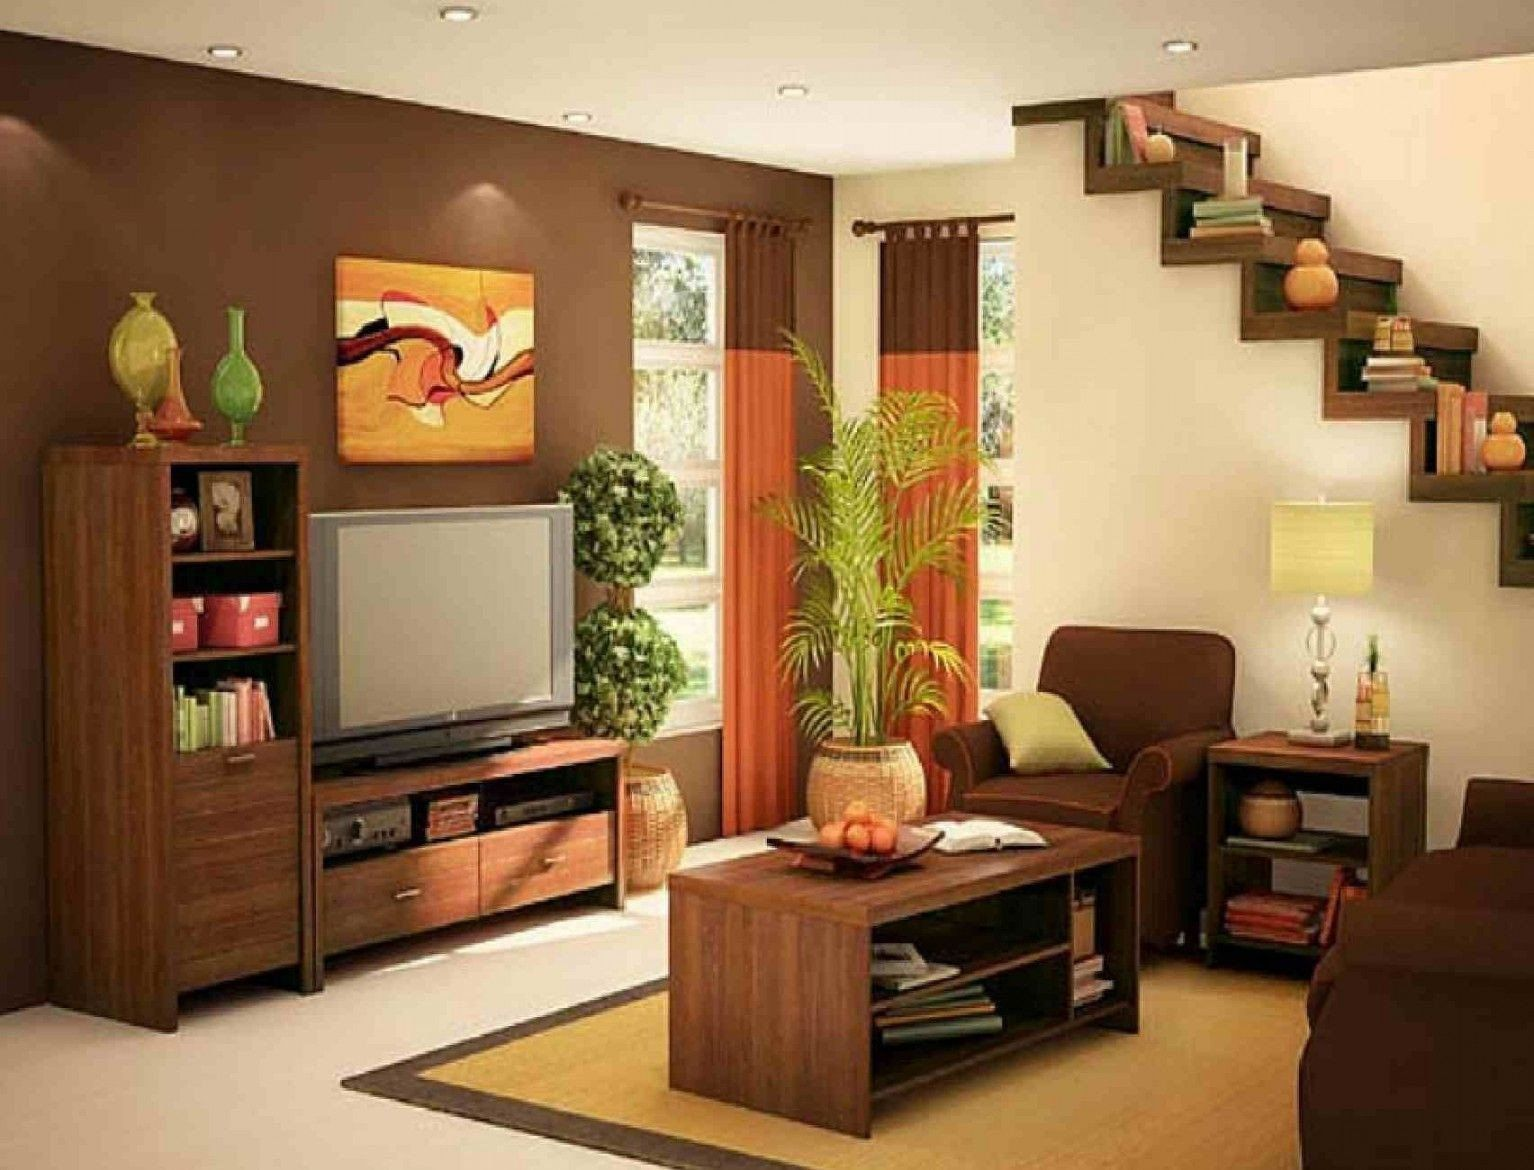 Small House Interior Design Living Room Interior Design Ideas Living Rooms Philippi In 2020 Small House Interior Small House Interior Design Simple Living Room Designs